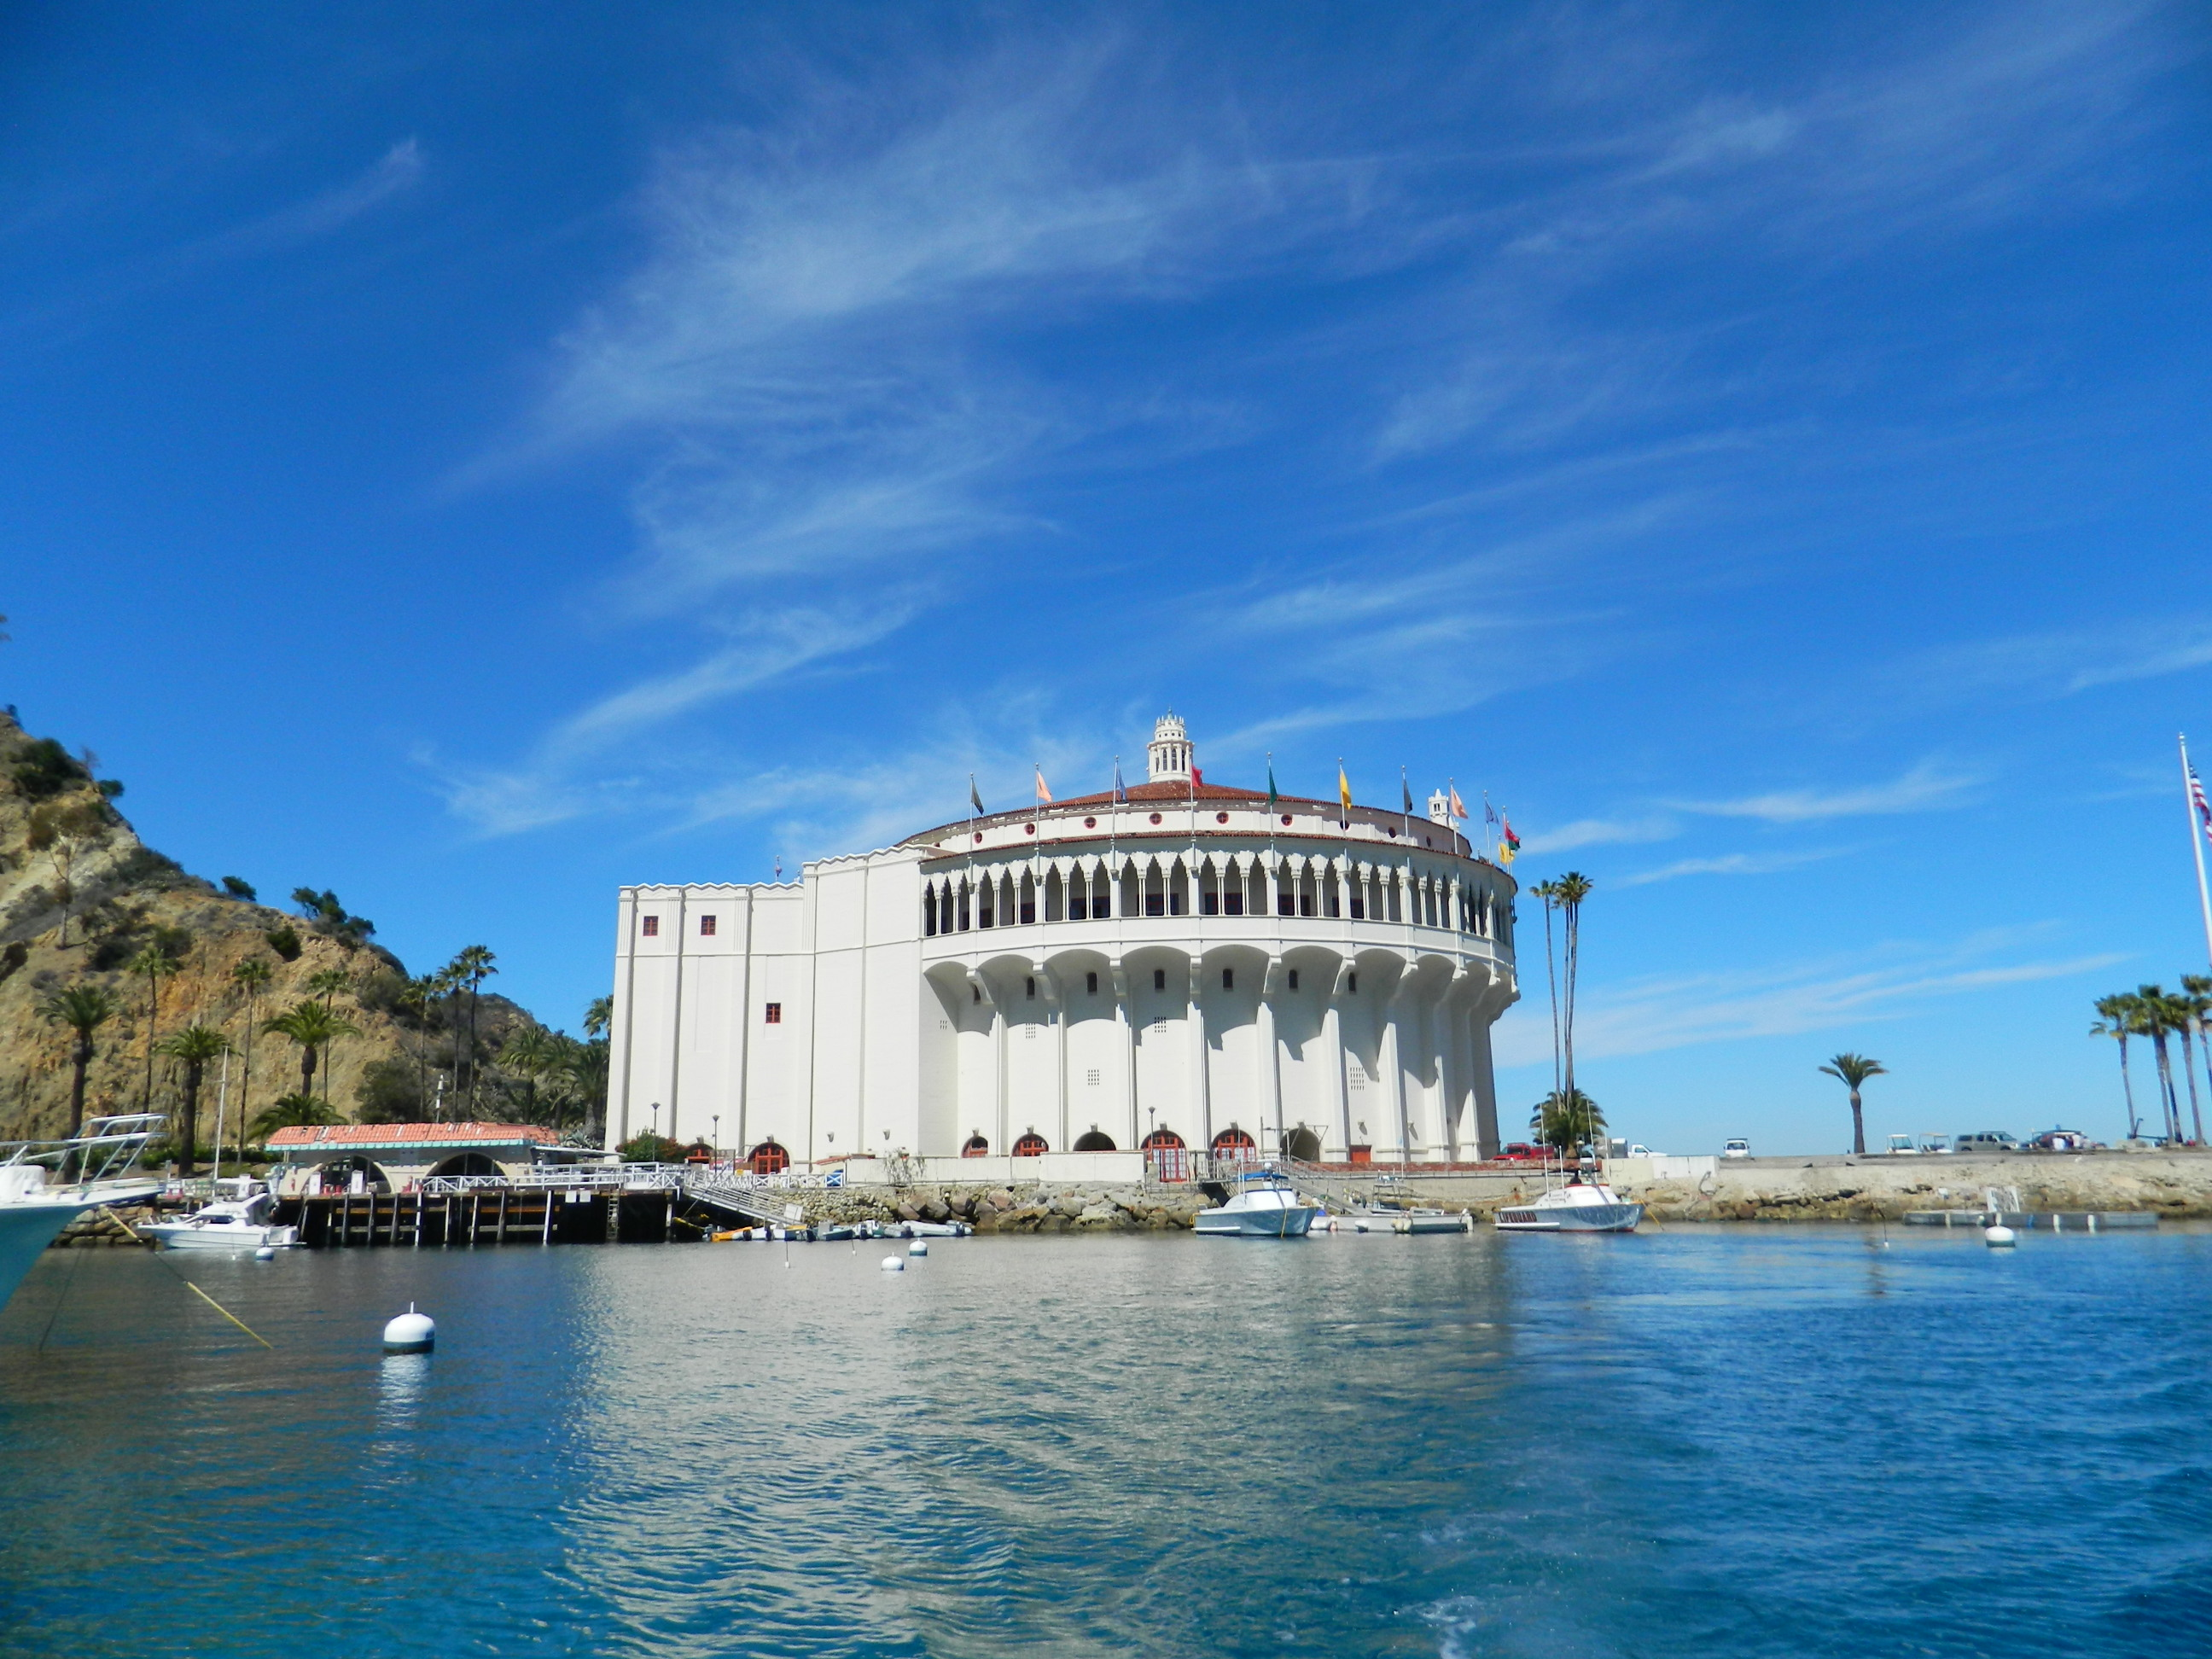 Casino on Catalina Island